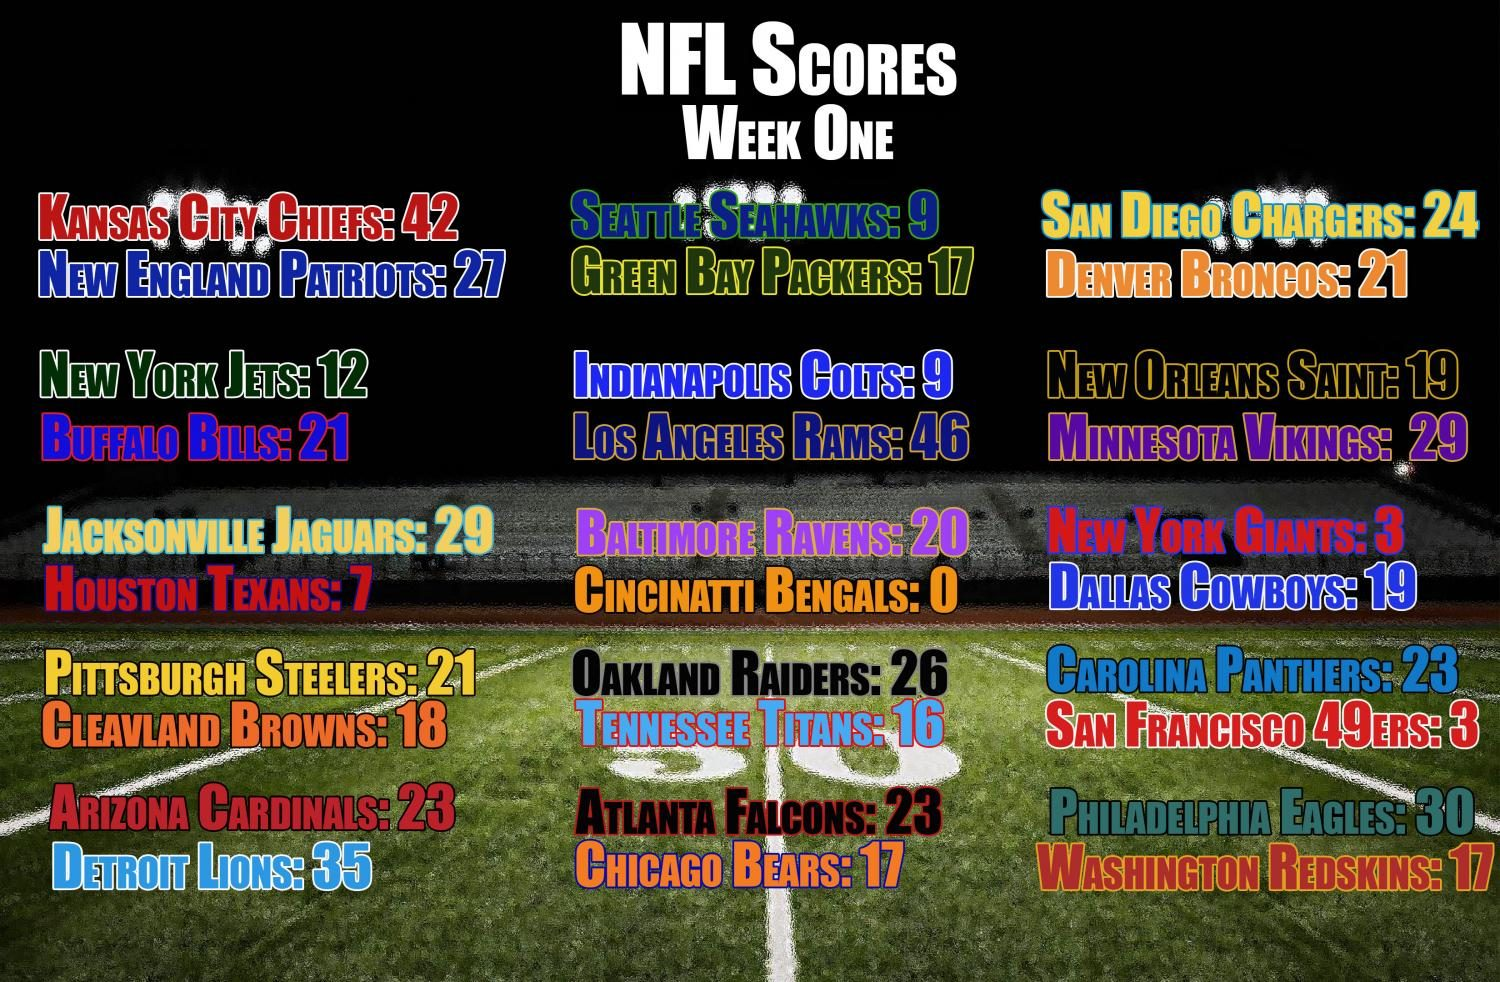 NFL week one scores